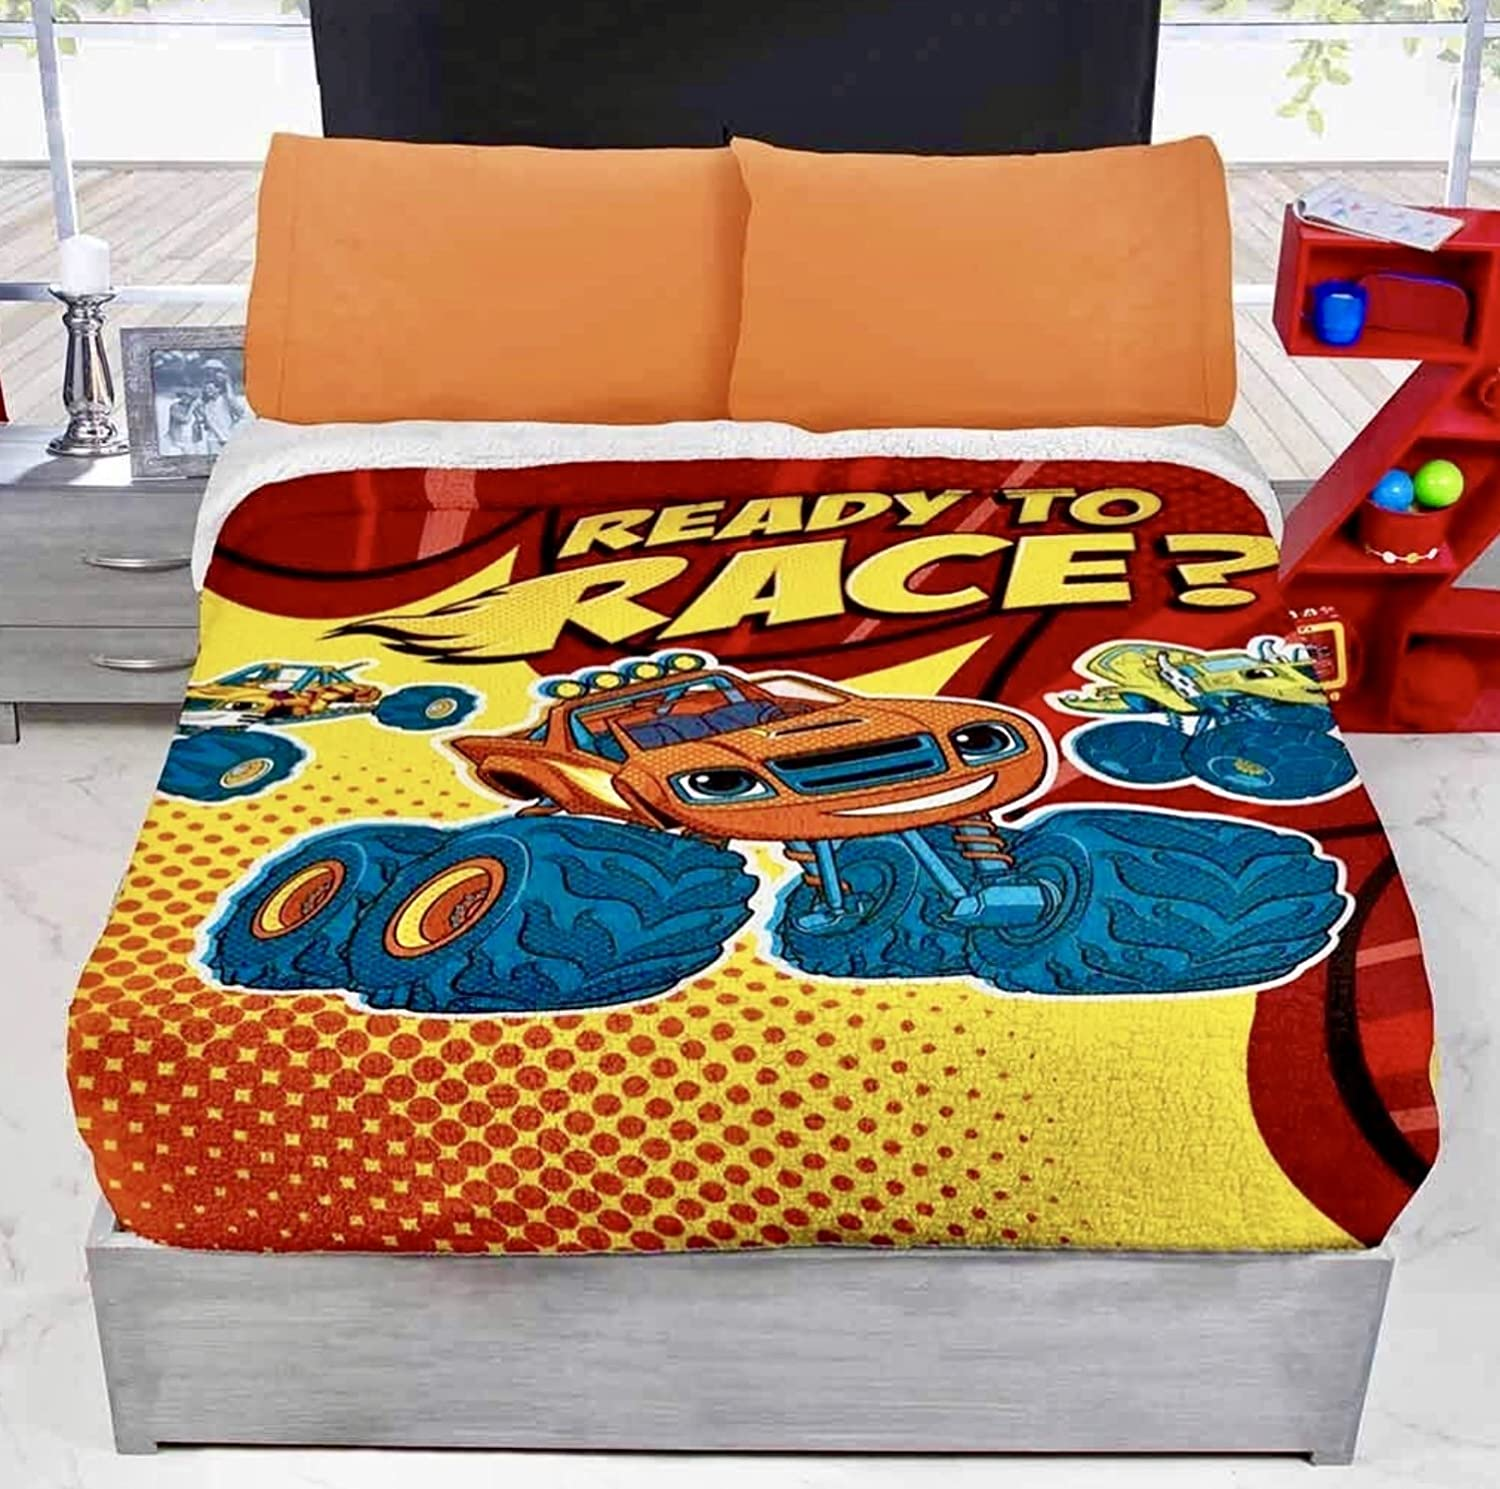 JORGE'S HOME FASHION INC BLAZE MONSTER MACHINES KIDS BOYS ORIGINAL LICENSE BLANKET WITH SHERPA VERY SOFTY THICK WARM AND SHEET SET 4 PCS TWIN SIZE